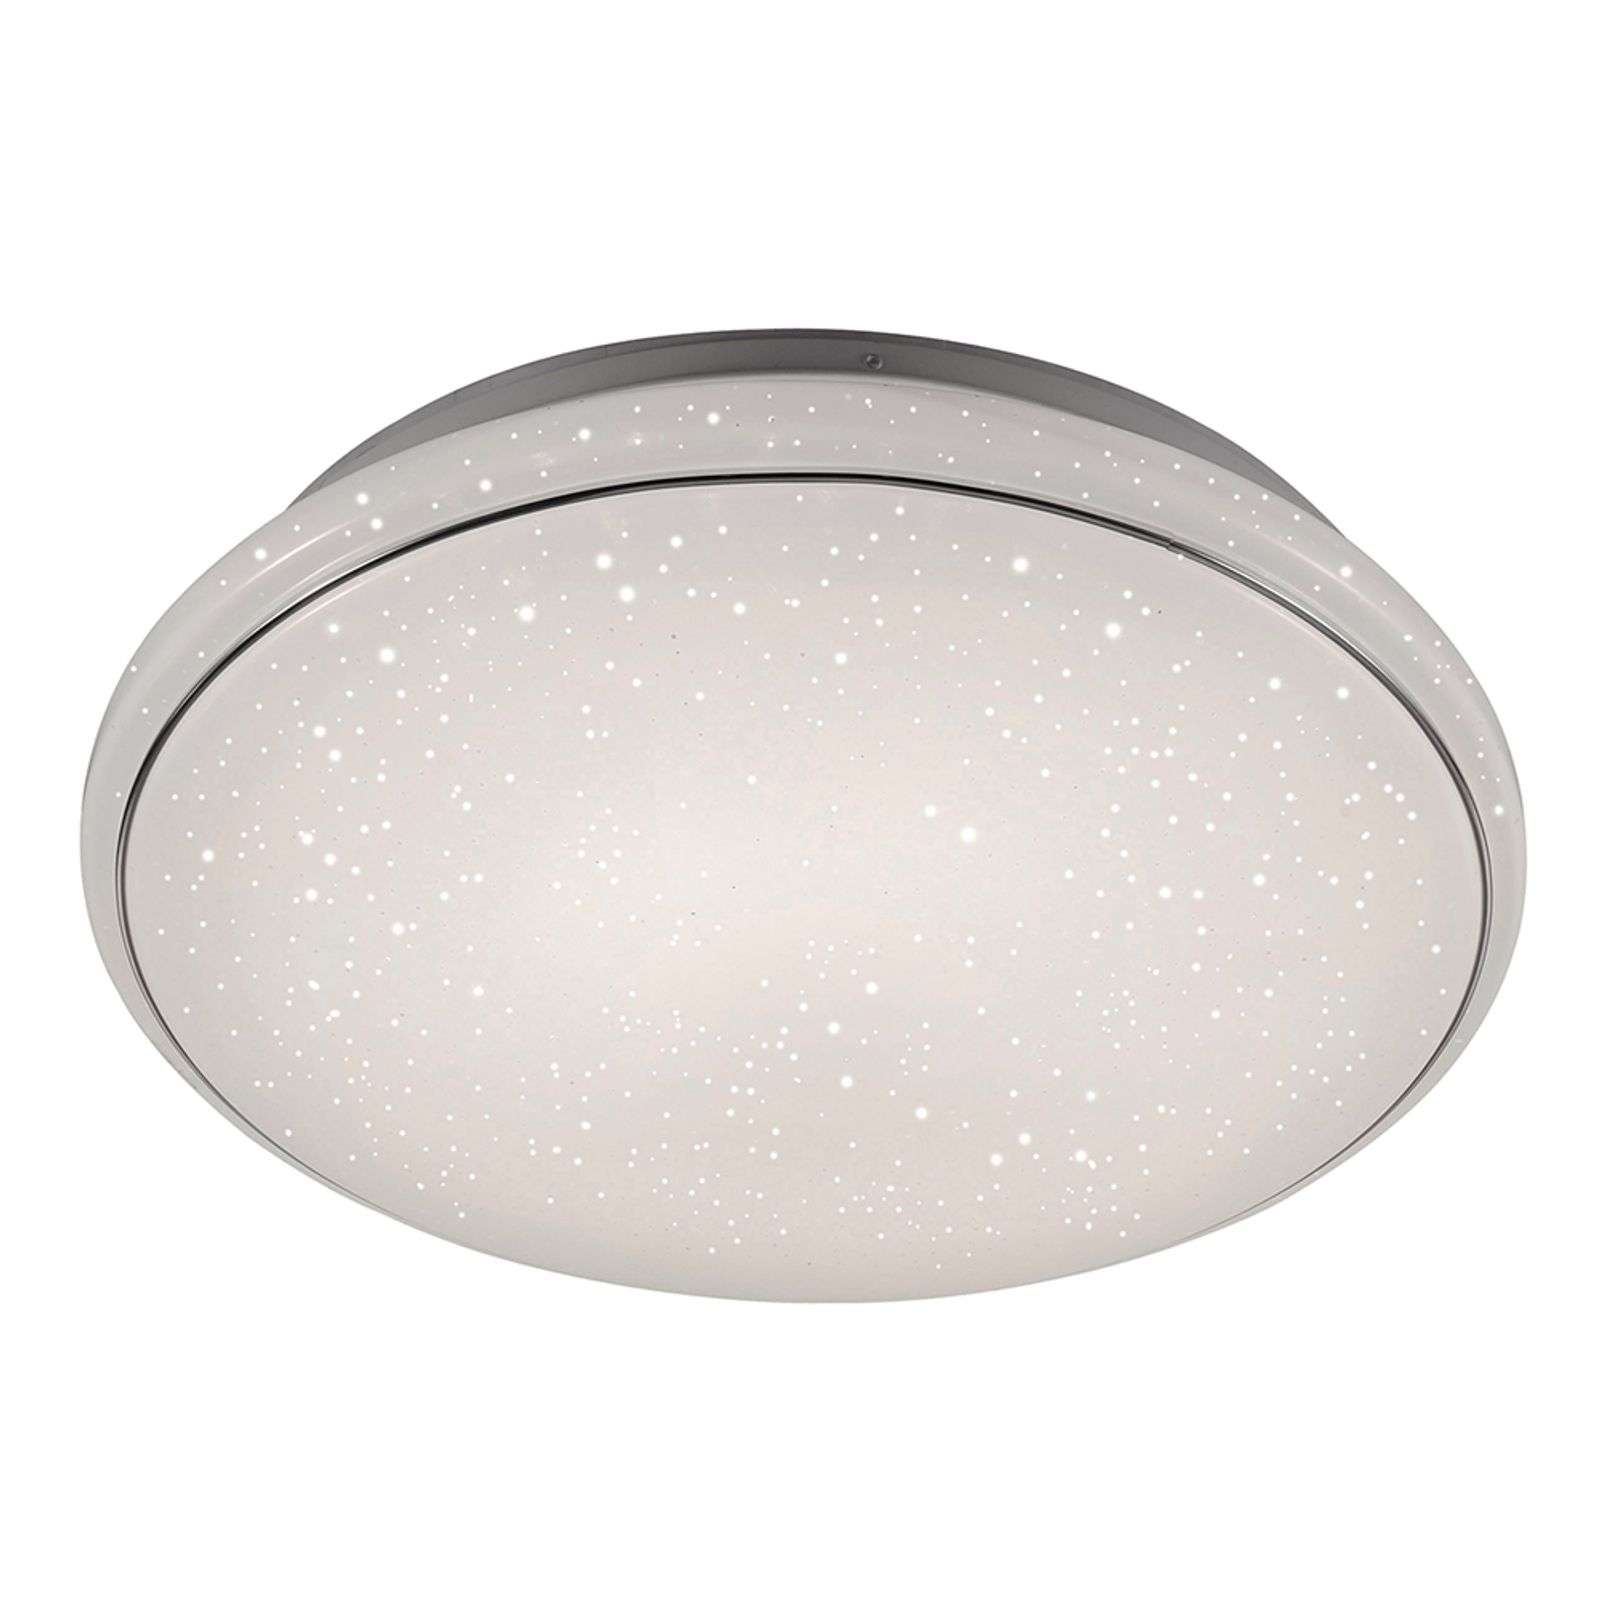 Grand plafonnier LED Jupiter - ciel étoilé